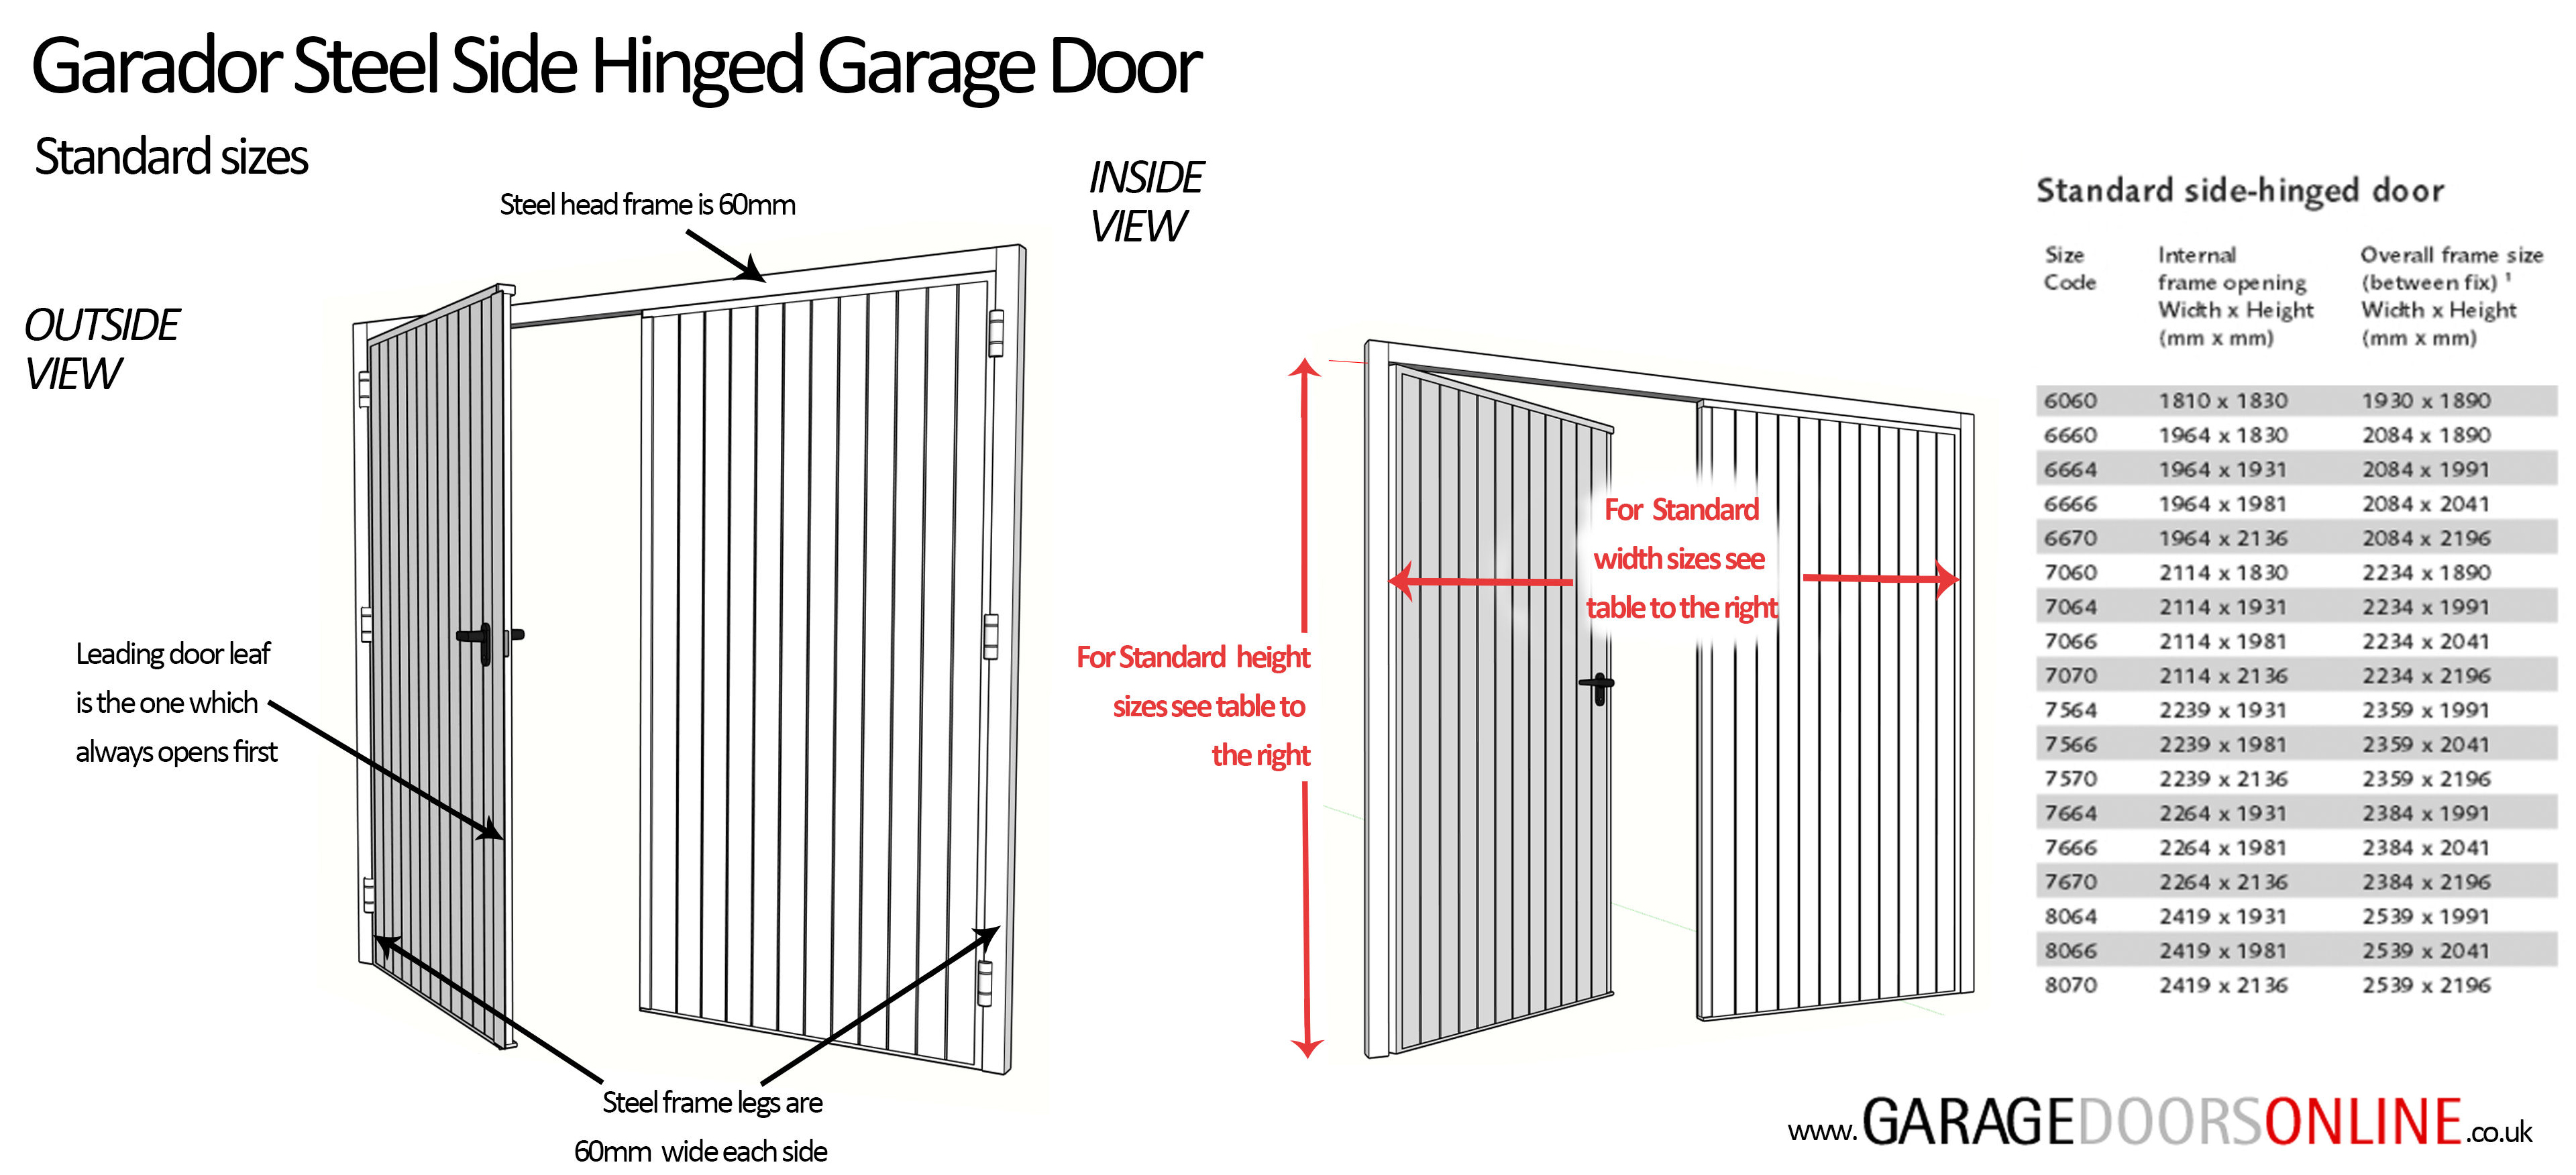 Garador Steel Side Hinge Ordering Sizes Garage Doors